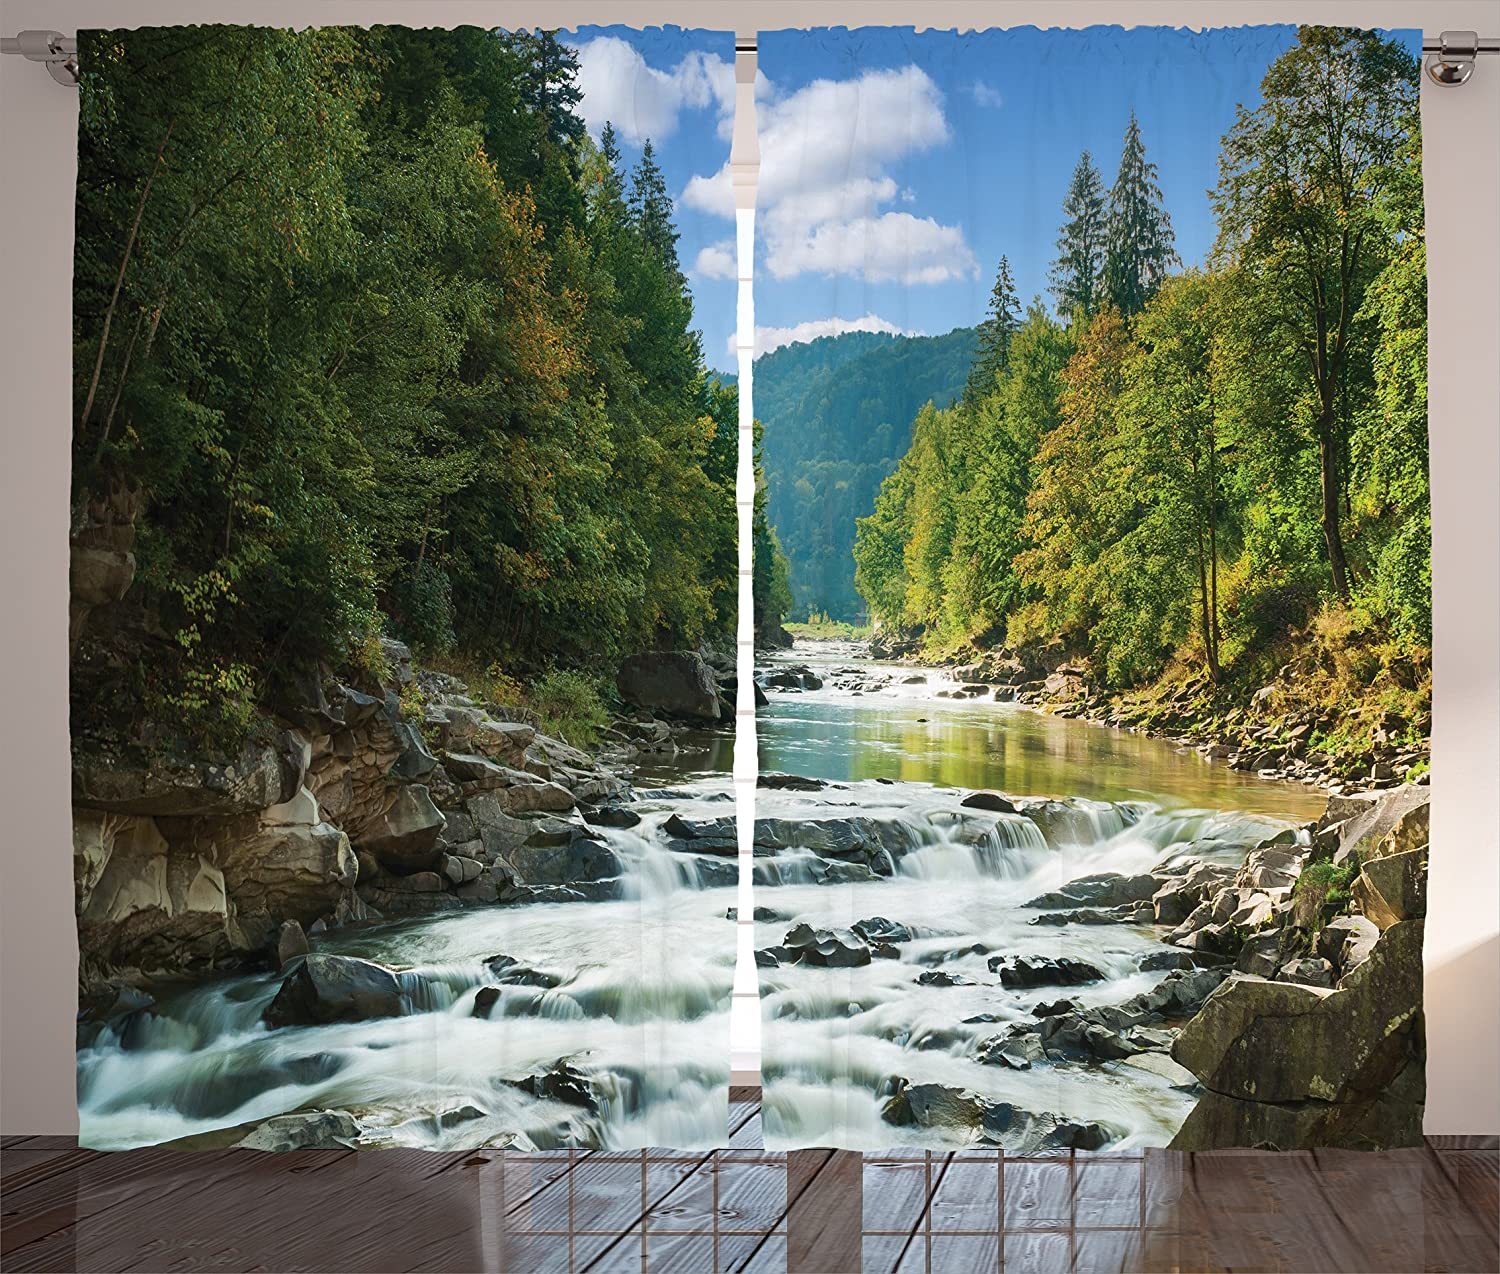 Amazon Com Lunarable Nature Curtains Mountain River Along Forest Waterfall Rocks Stream Travel Destination Living Room Bedroom Window Drapes 2 Panel Set 108 X 96 Sky Blue Forest Green Home Kitchen